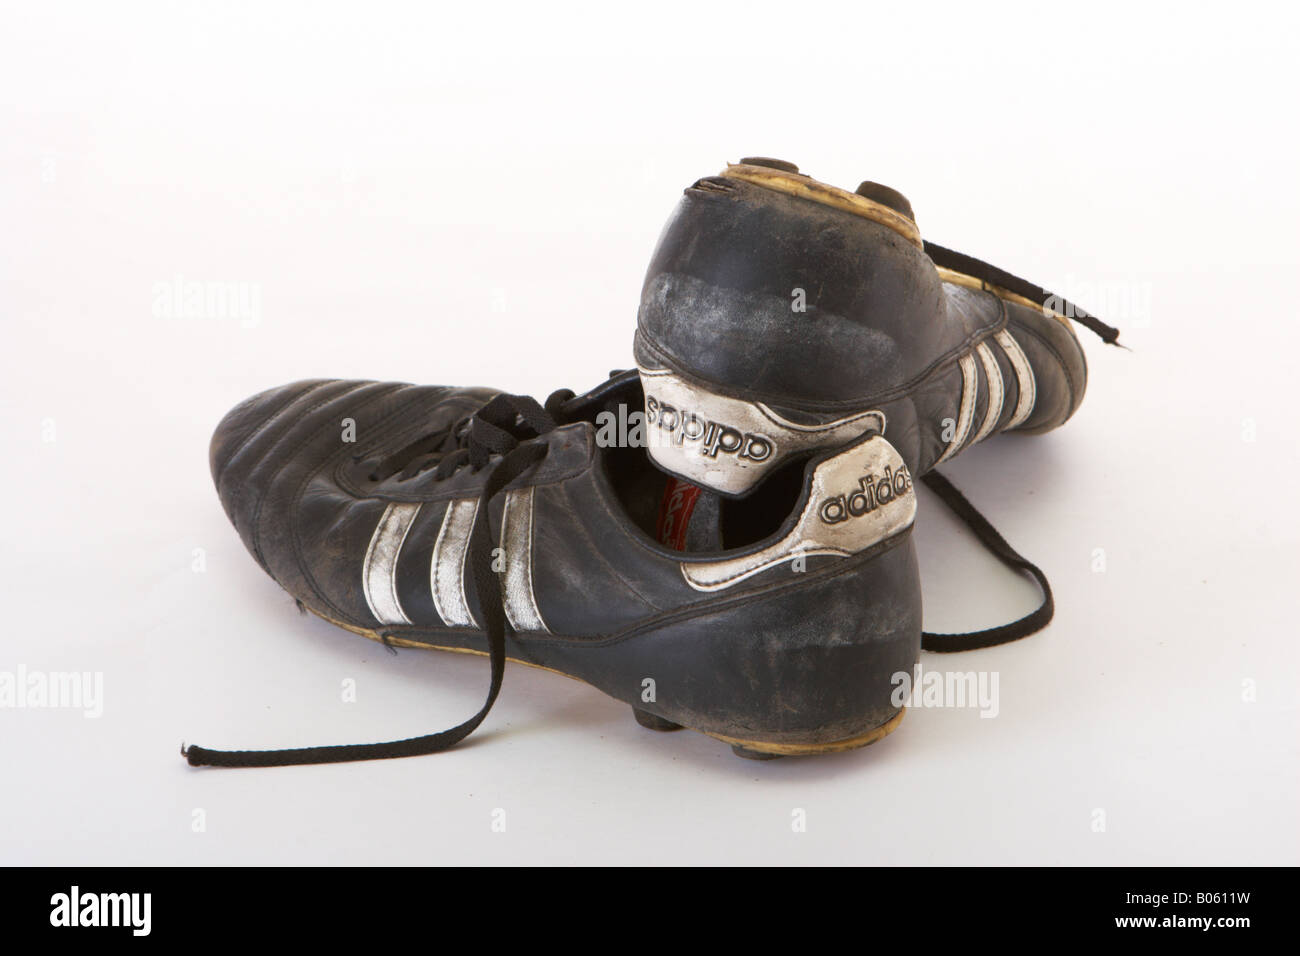 official images new arrive new arrive Old football boots pair Stock Photo: 17342917 - Alamy